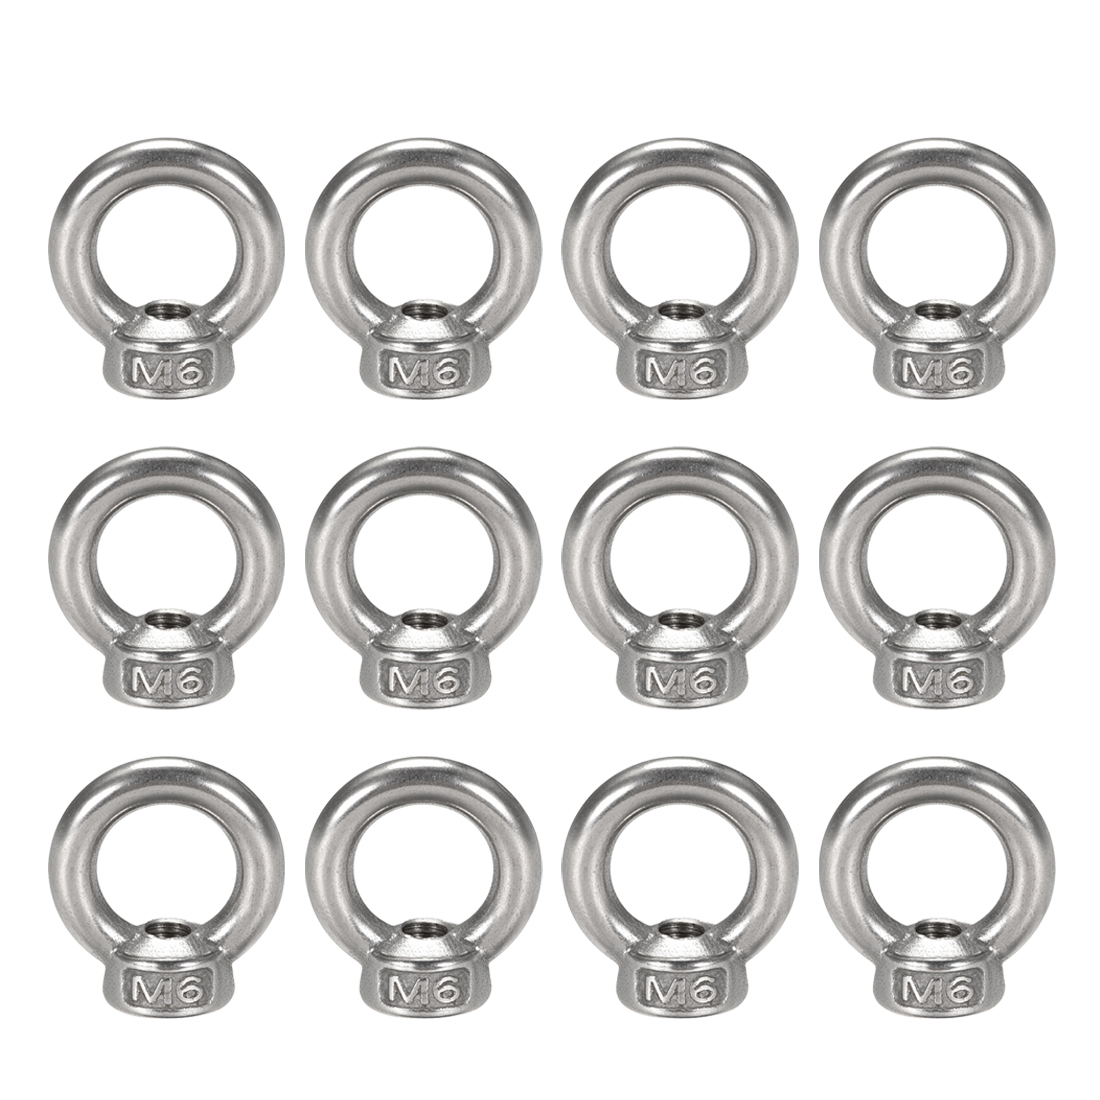 Marine Cable Rope M6 Female Thread Dia Lifting Eye Nuts Bolt Ring 12pcs